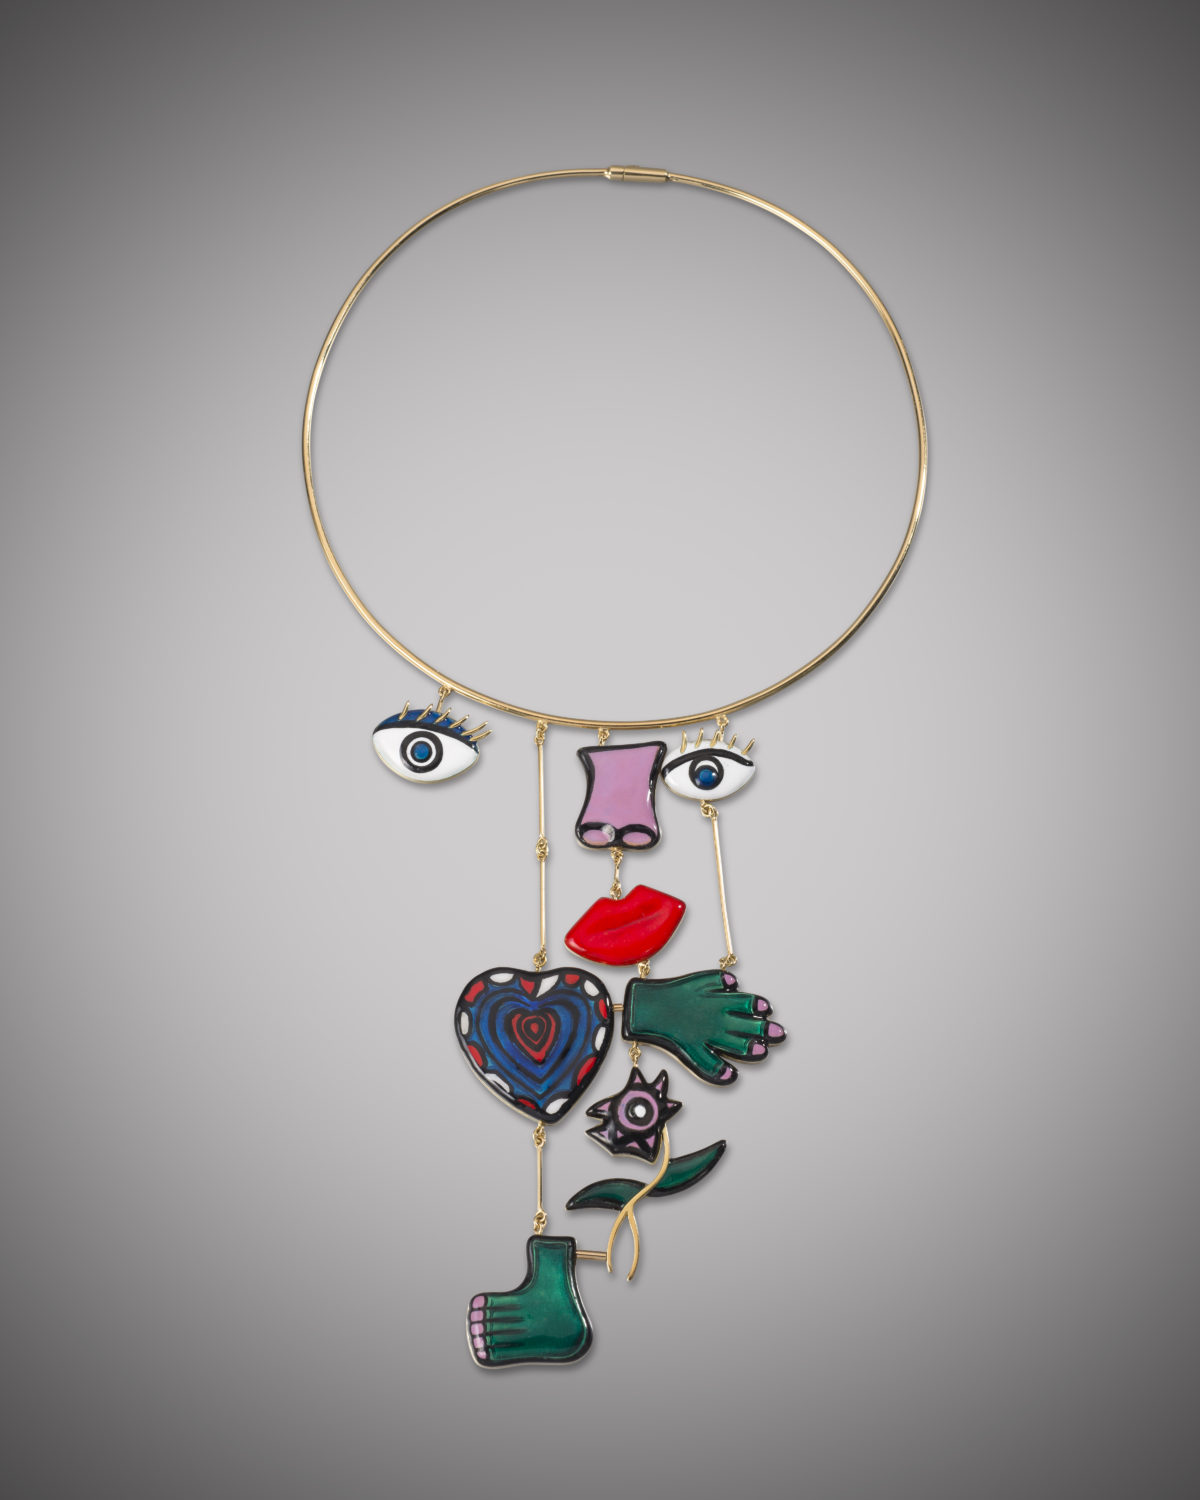 Niki de Saint Phalle, Assemblage Necklace, 1974-2015